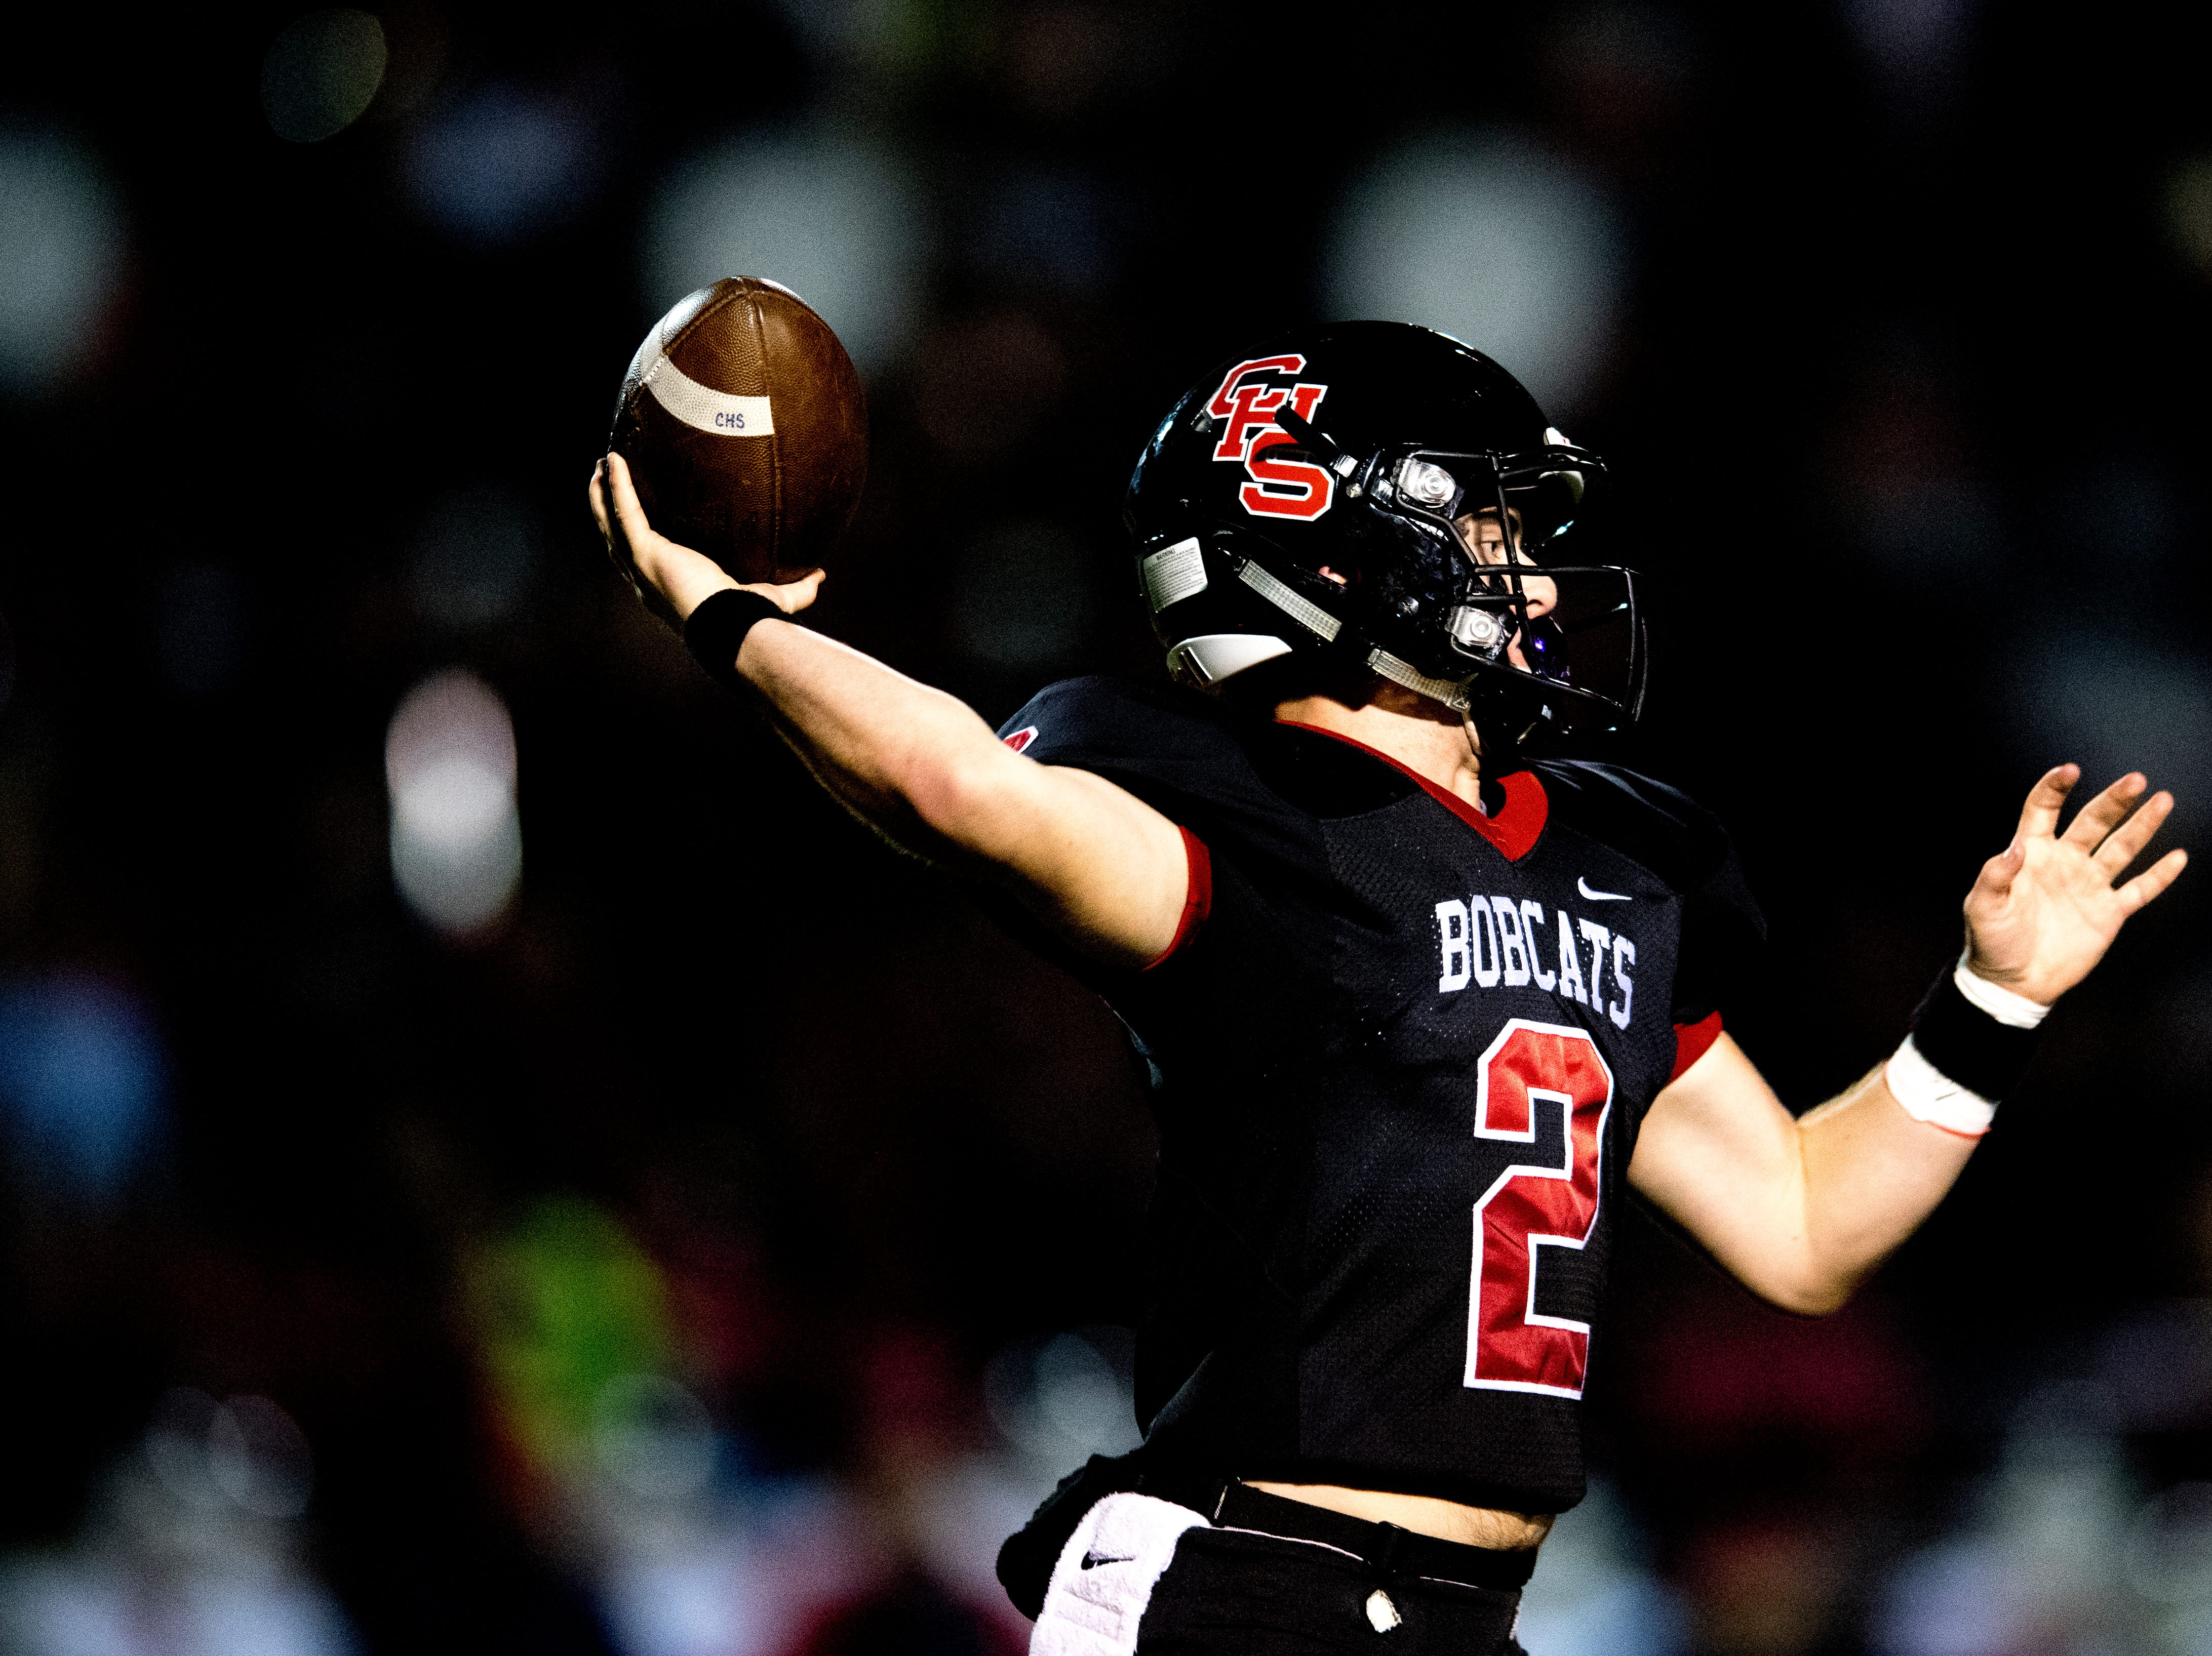 Central's Dakota Fawver (2) throws a pass during a football game between Central and South-Doyle at Central High School in Knoxville, Tennessee on Friday, October 19, 2018.